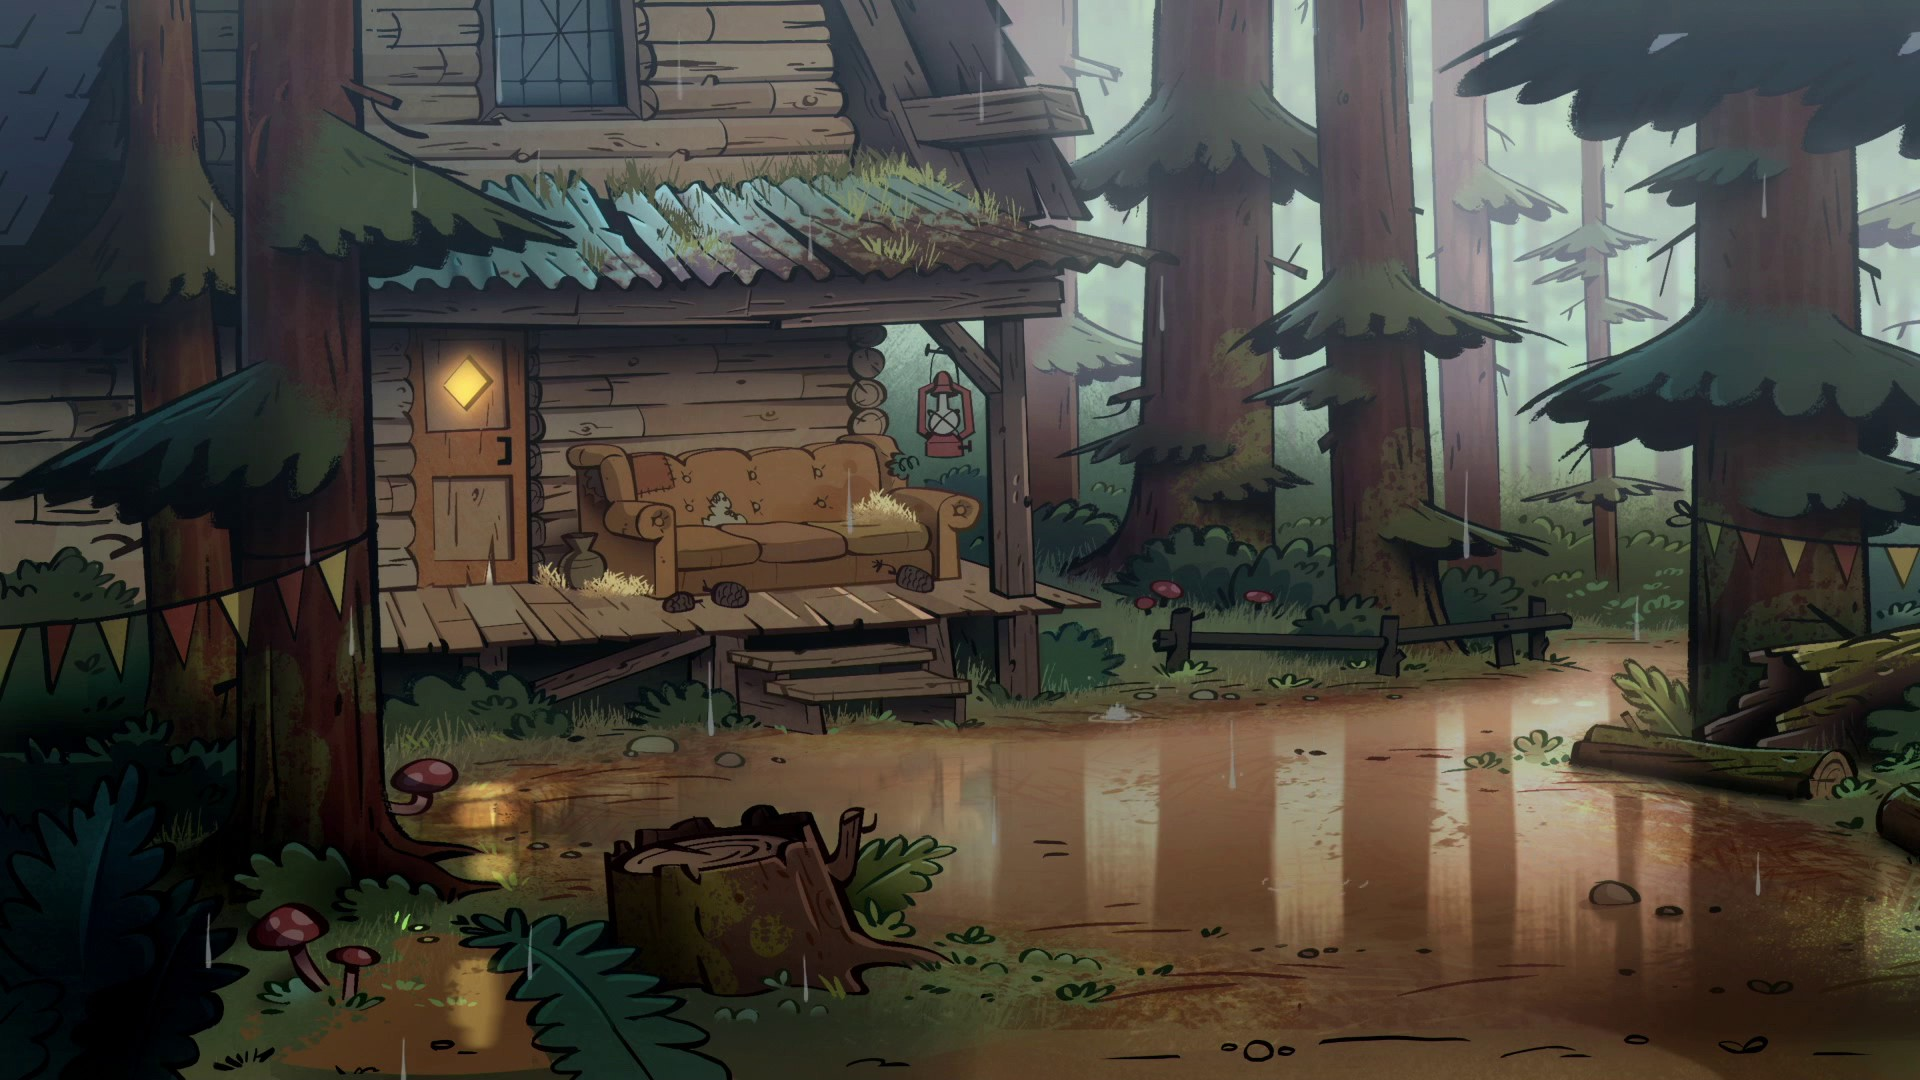 59 gravity falls backgrounds download free amazing hd